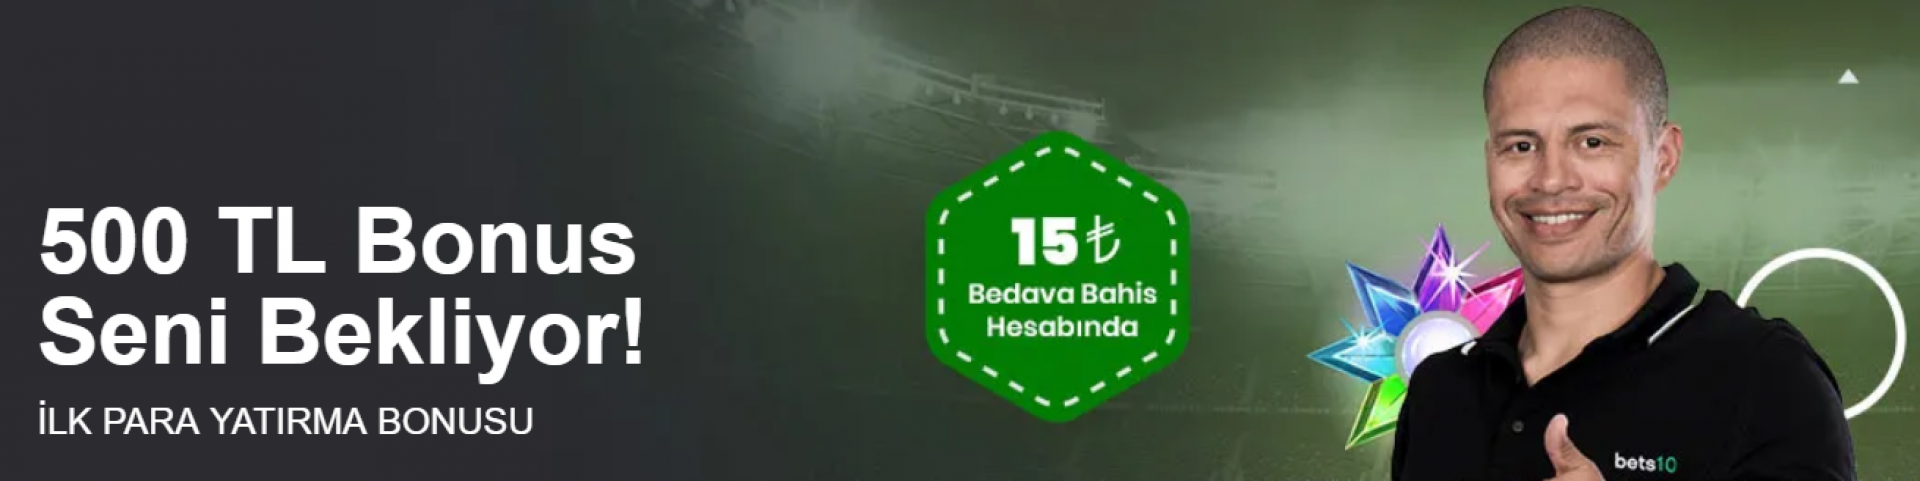 Bets10 :